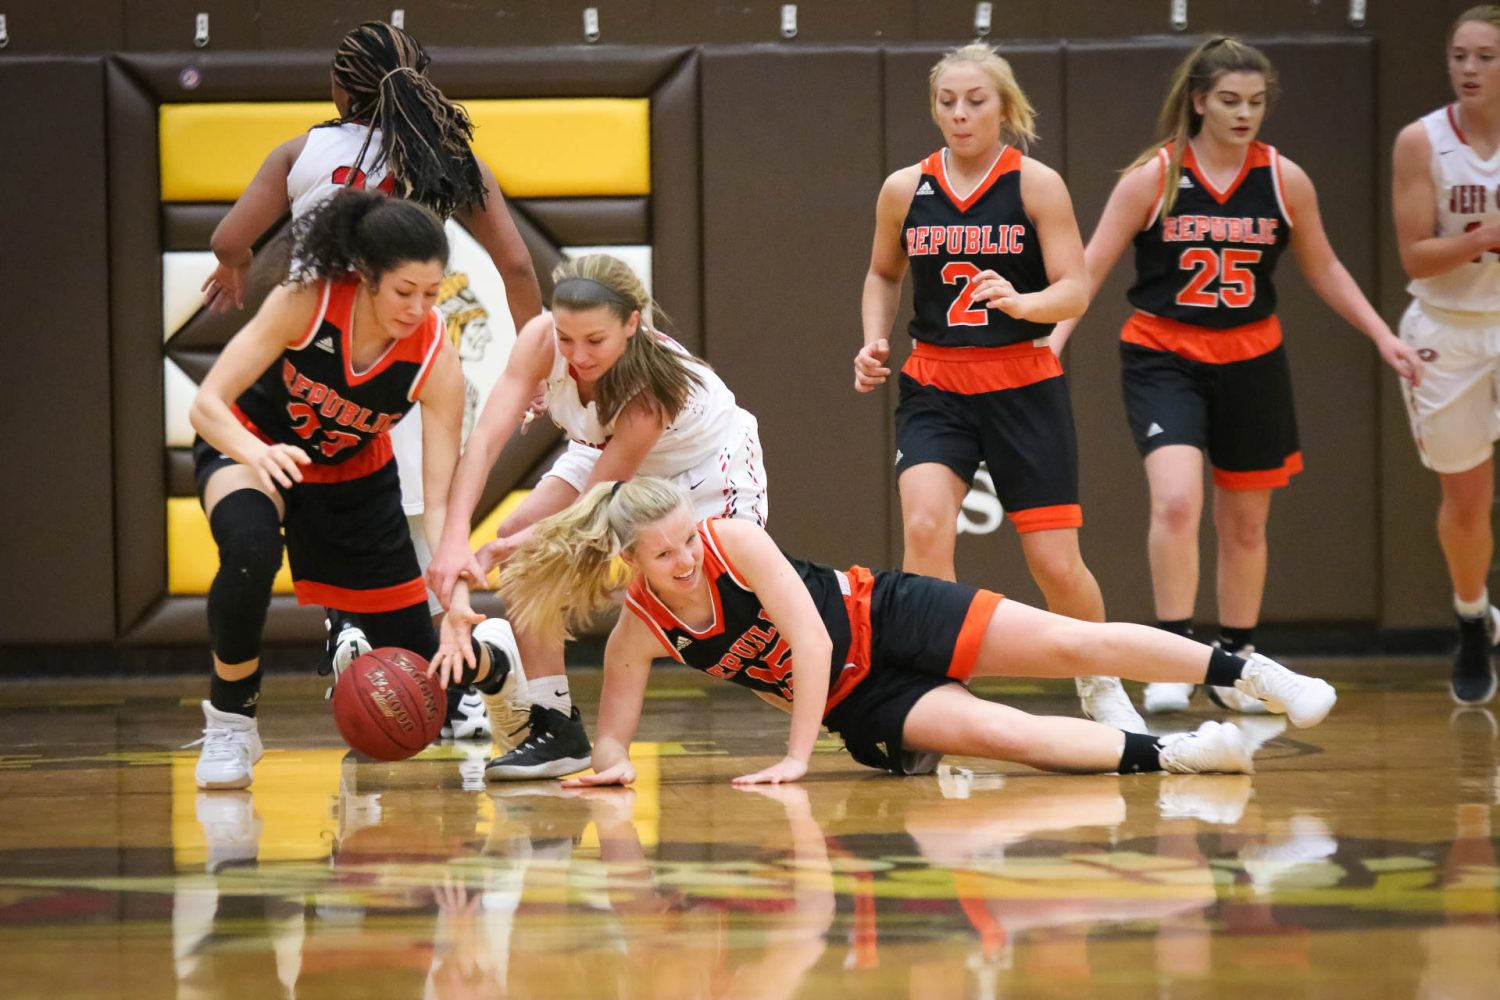 Photos:  Varsity Girls Basketball vs Jeff City